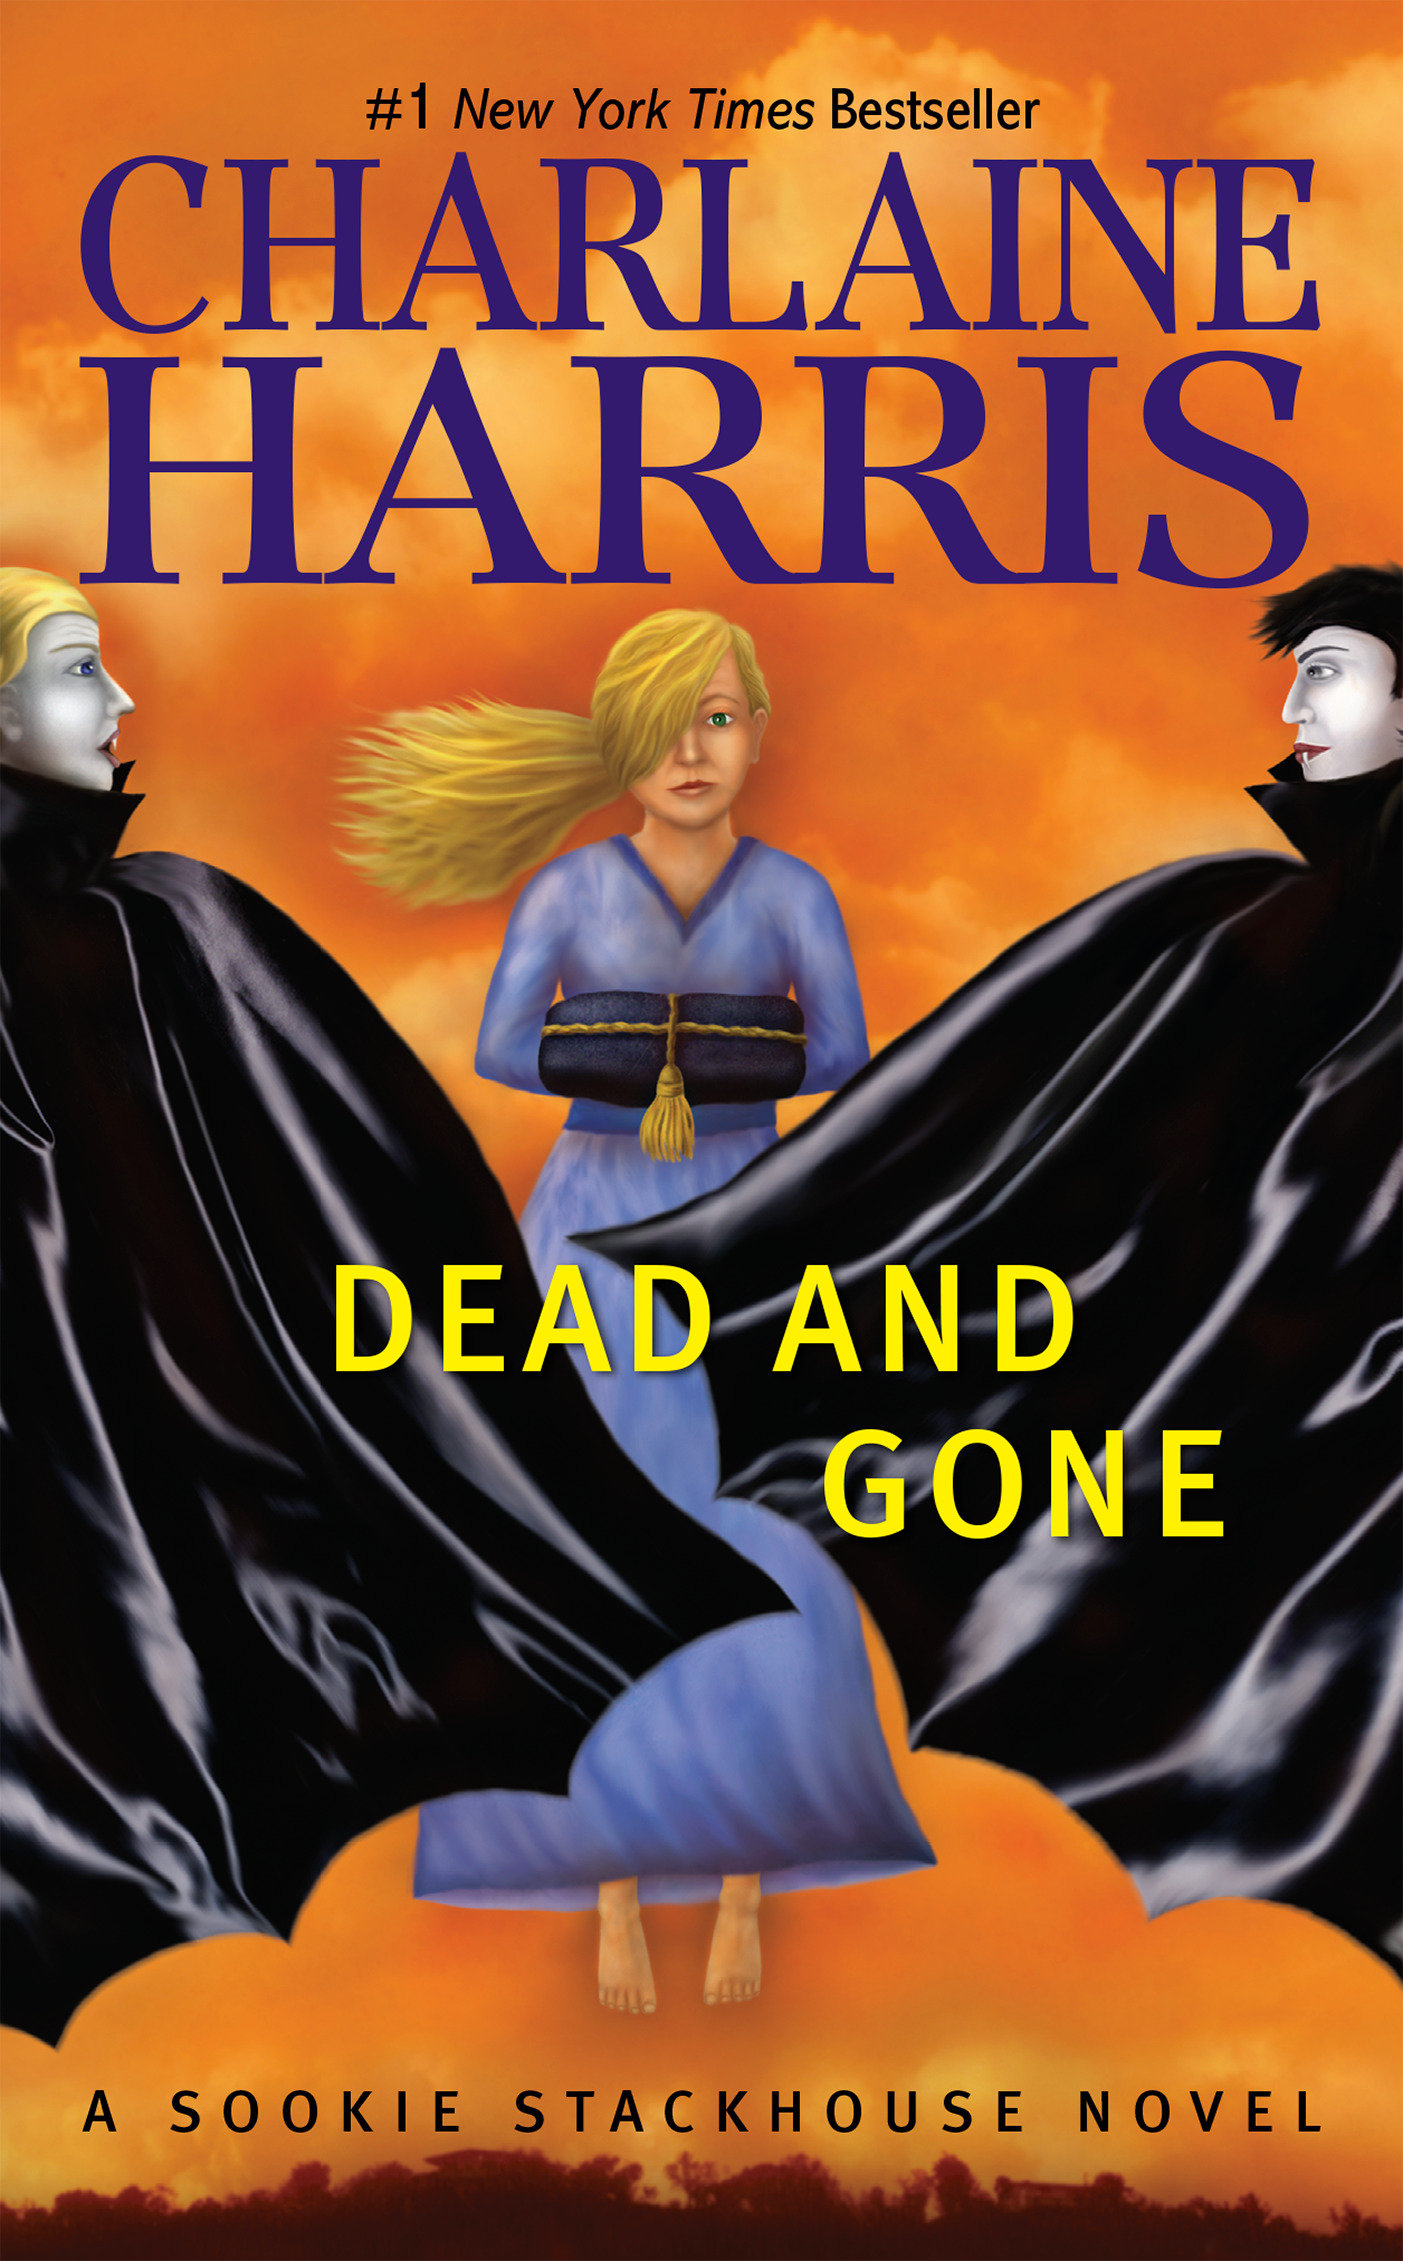 Dead and gone cover image